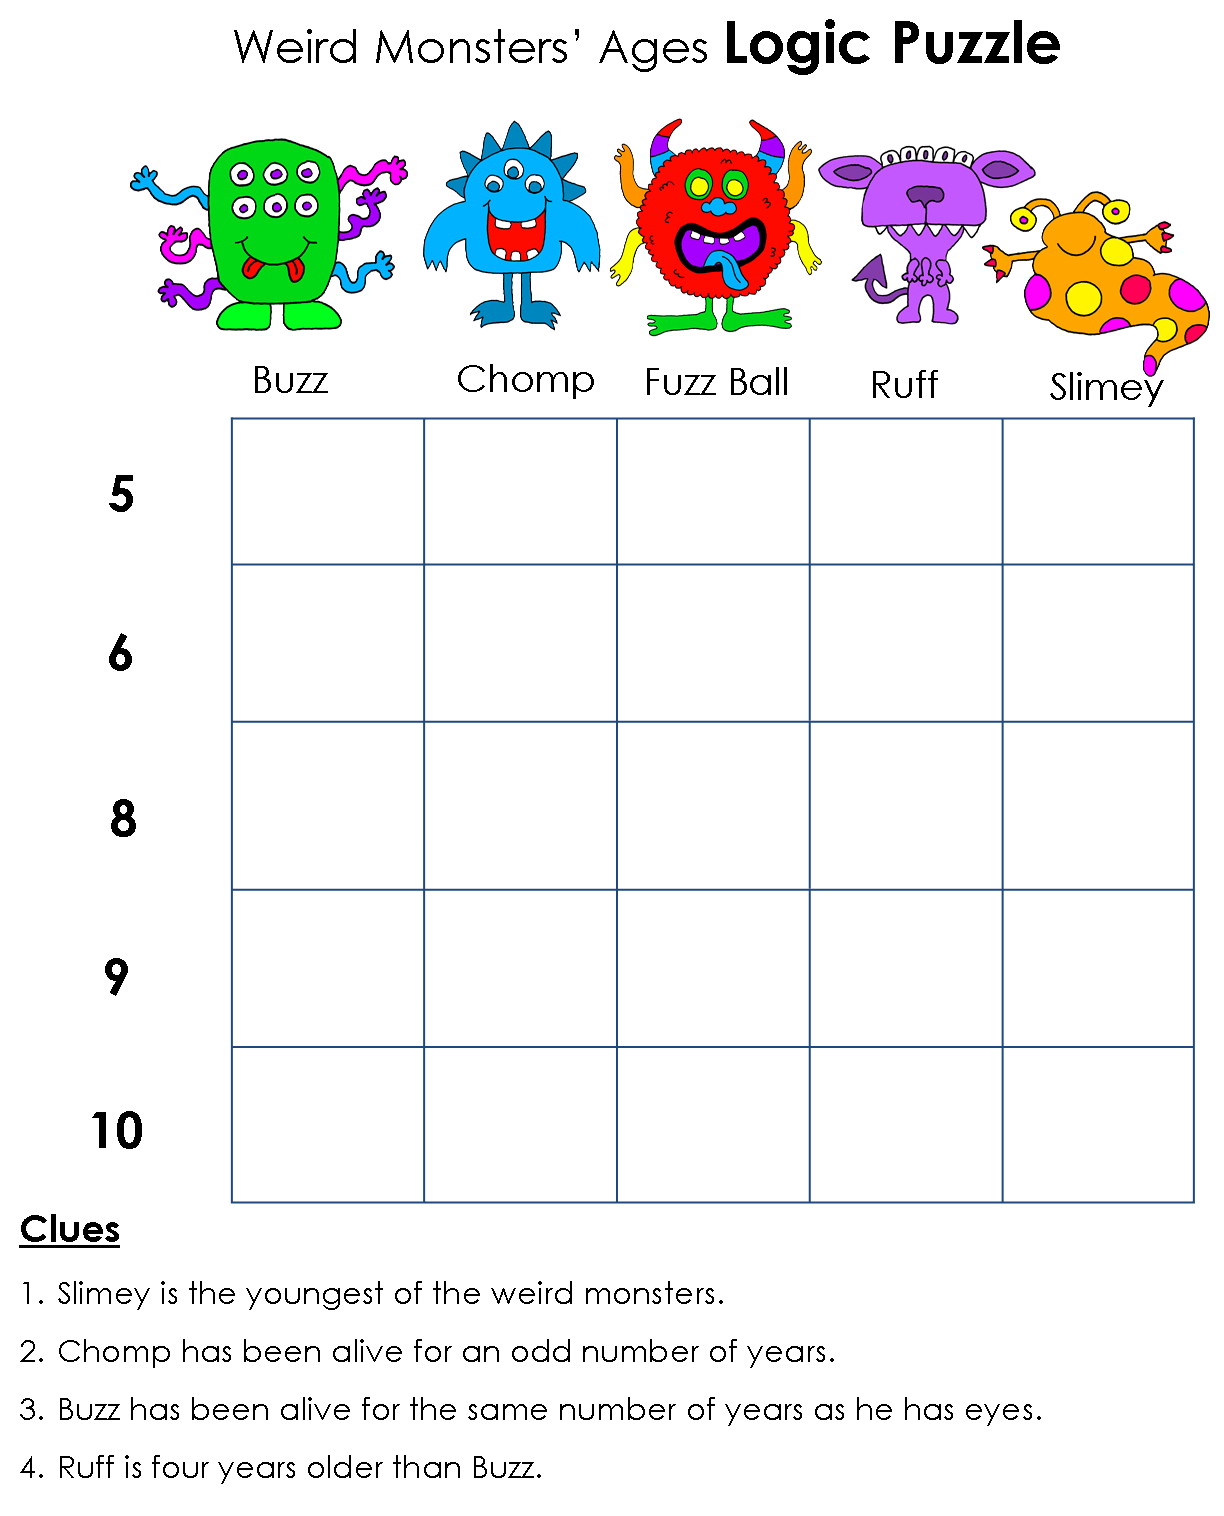 Beyond Gold Stars Logic Esome Printable Logic Puzzles